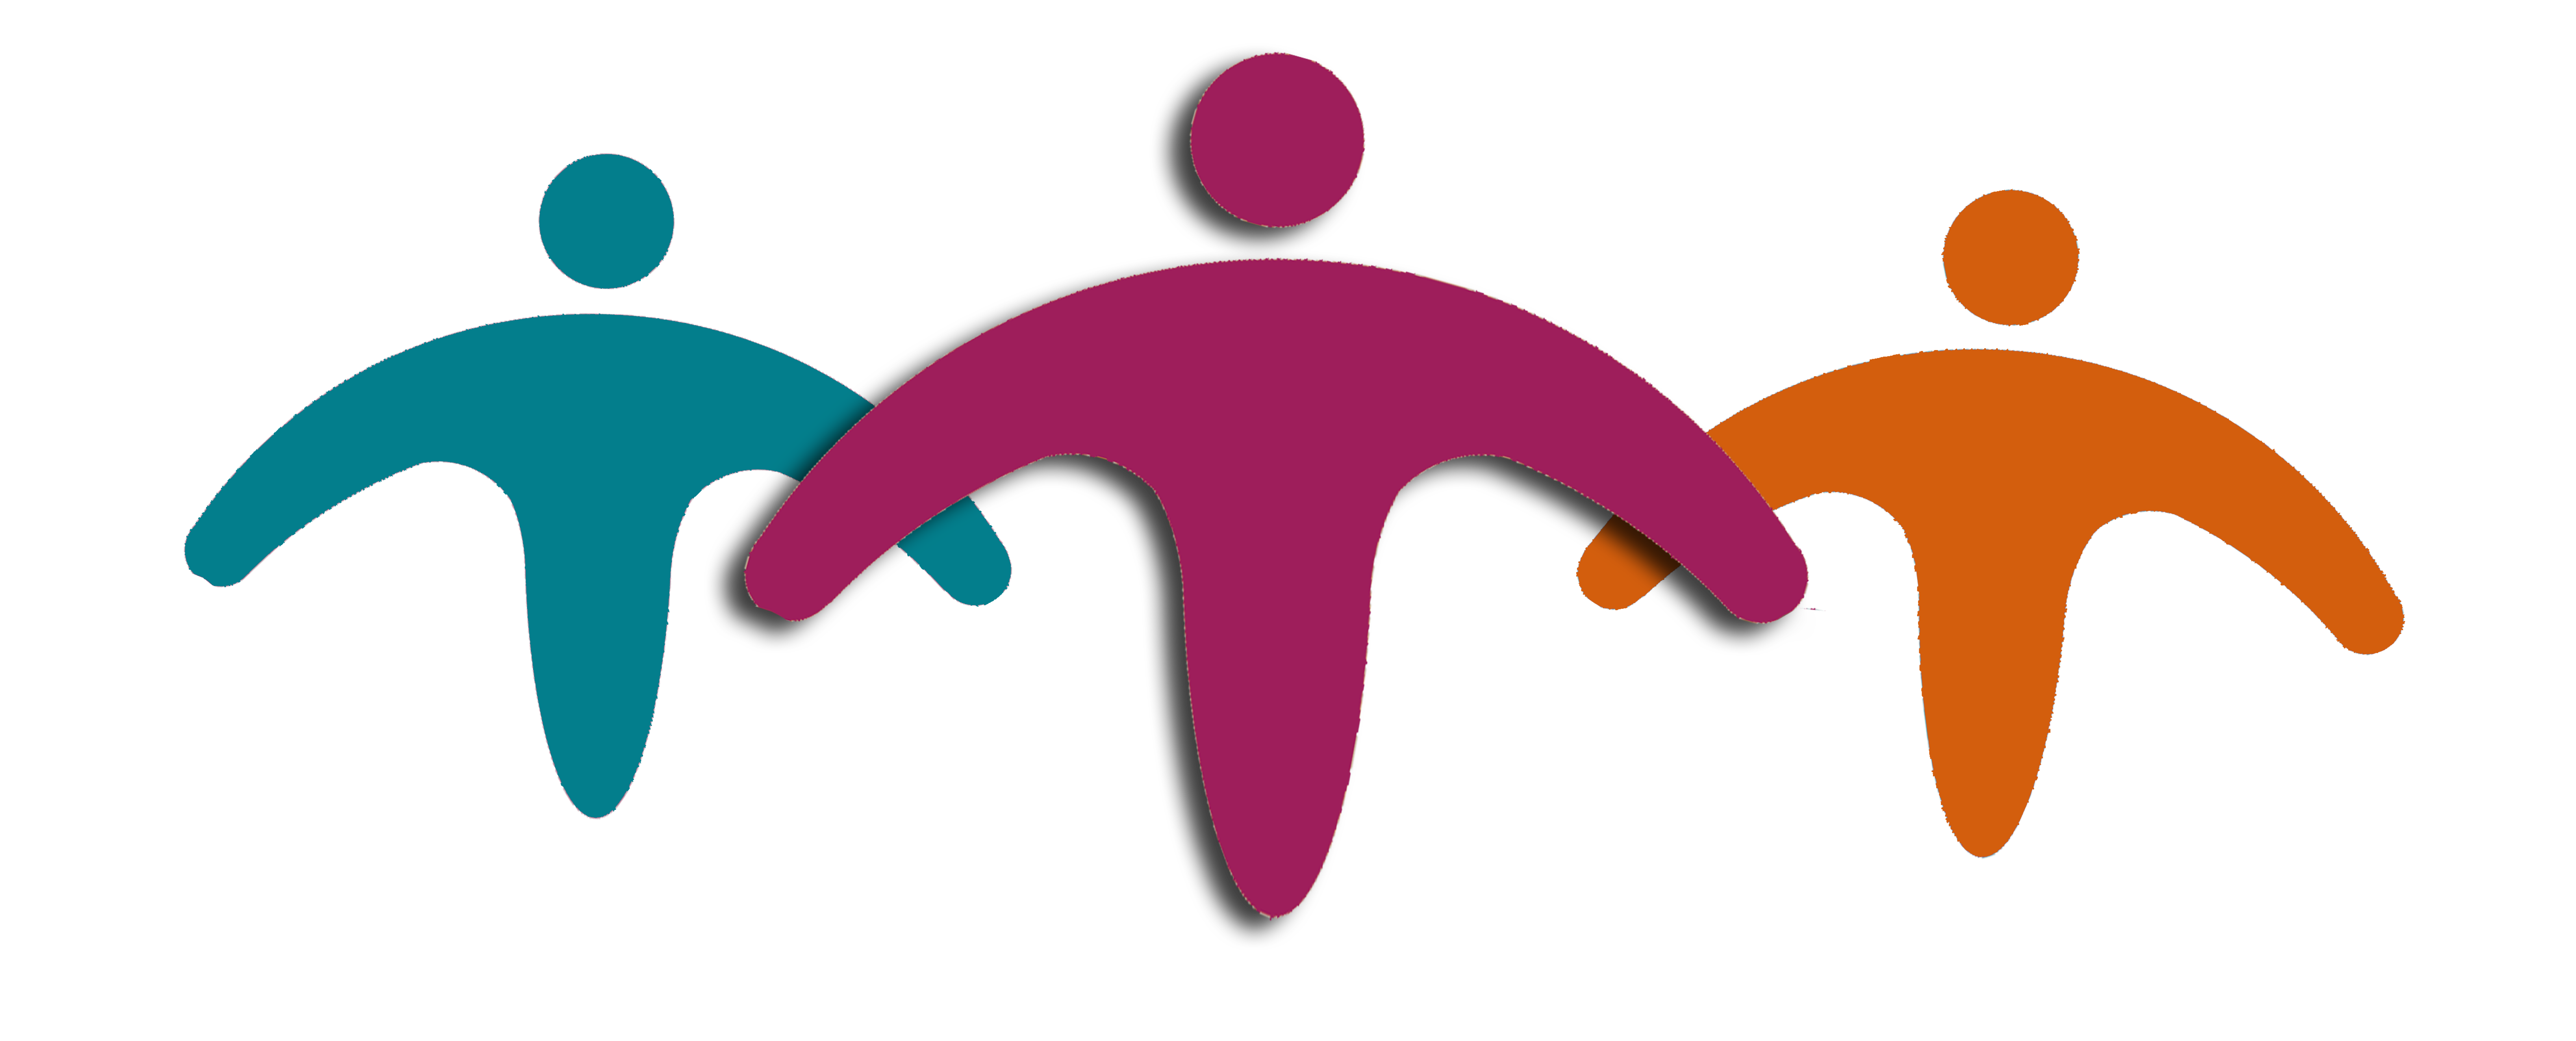 Get involved uirc board. Volunteering clipart family involvement